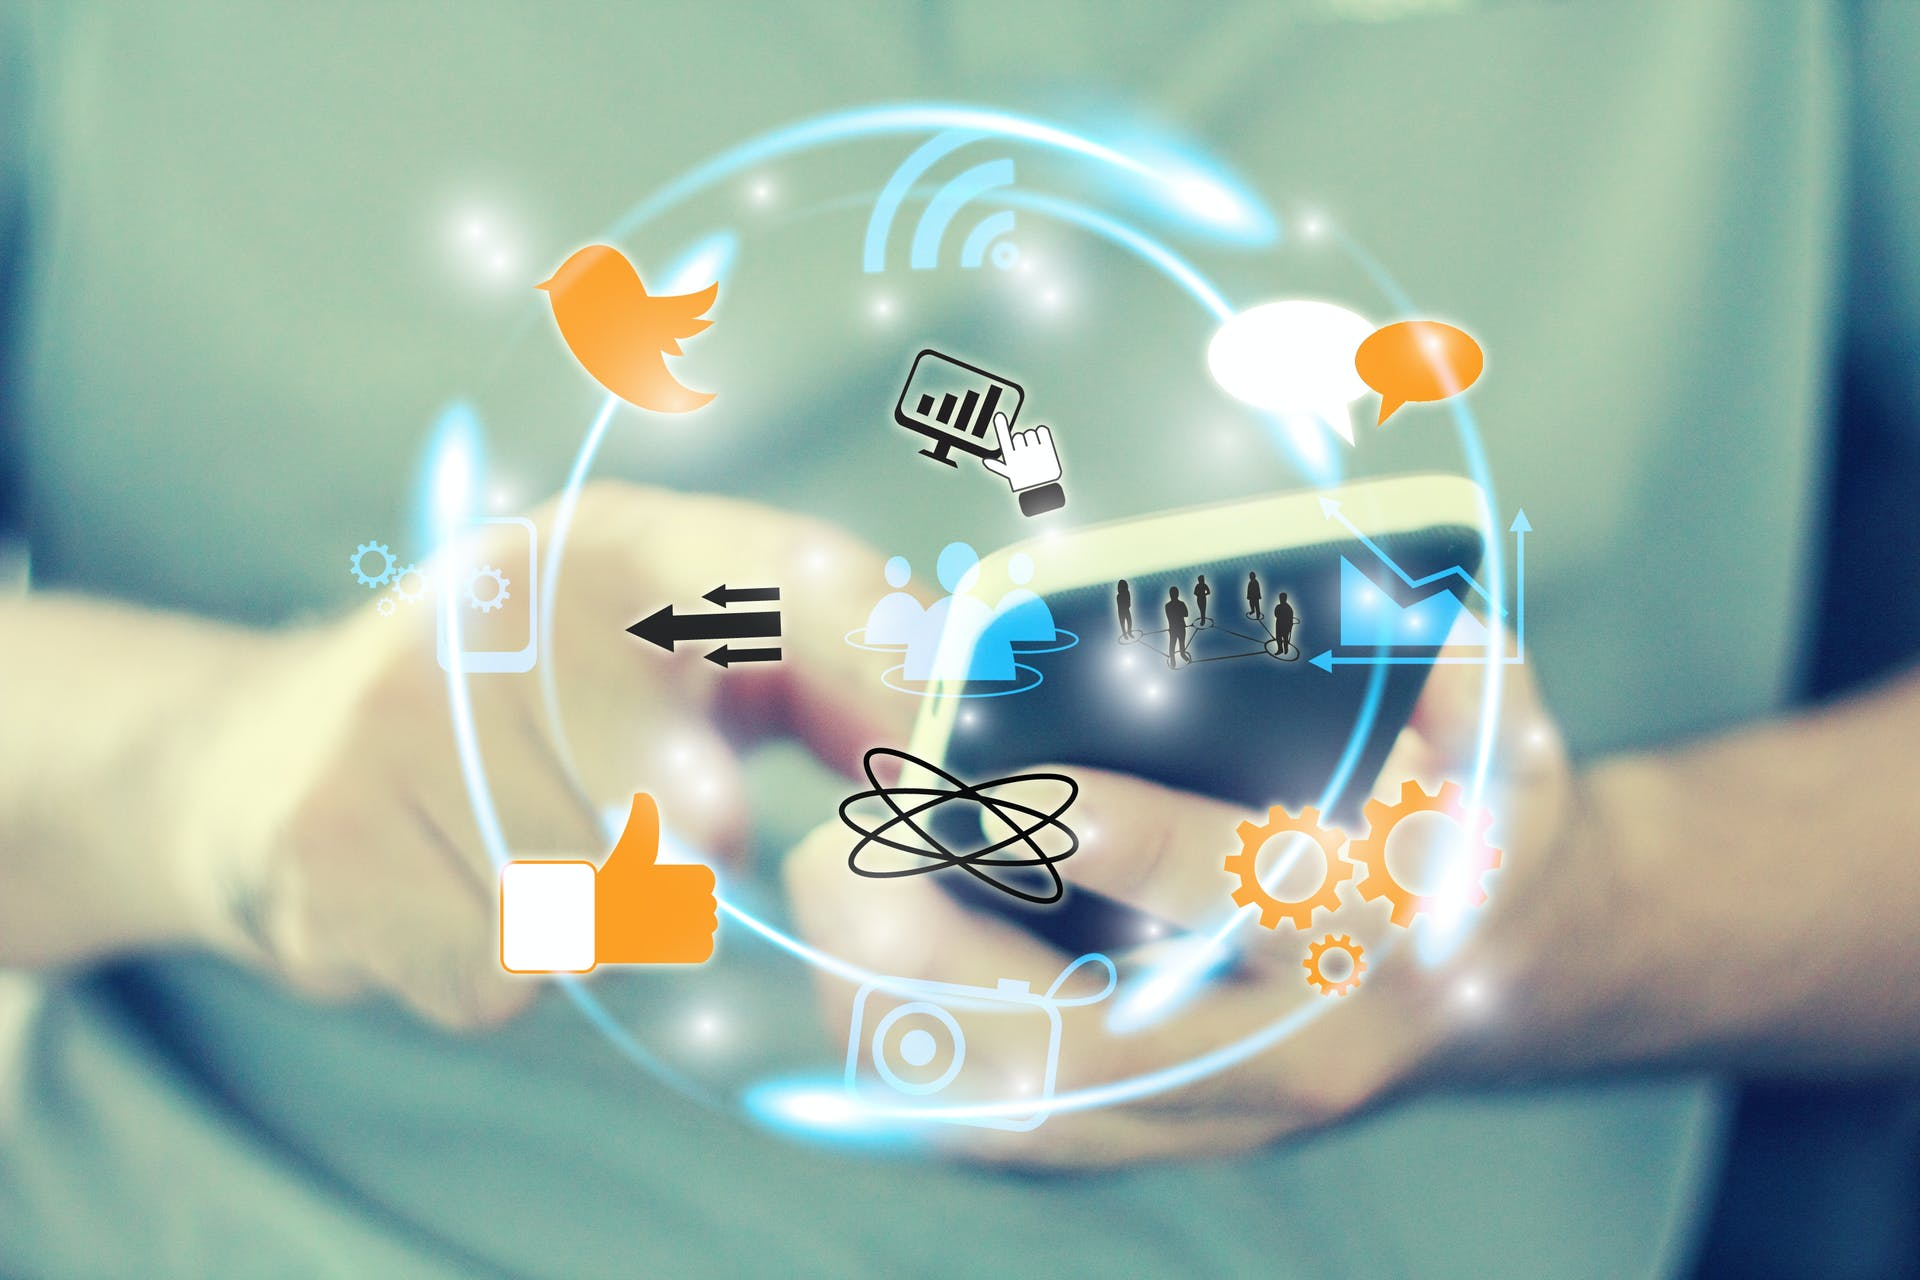 Illustration of social and technological icons against an image of a man using his smartphone